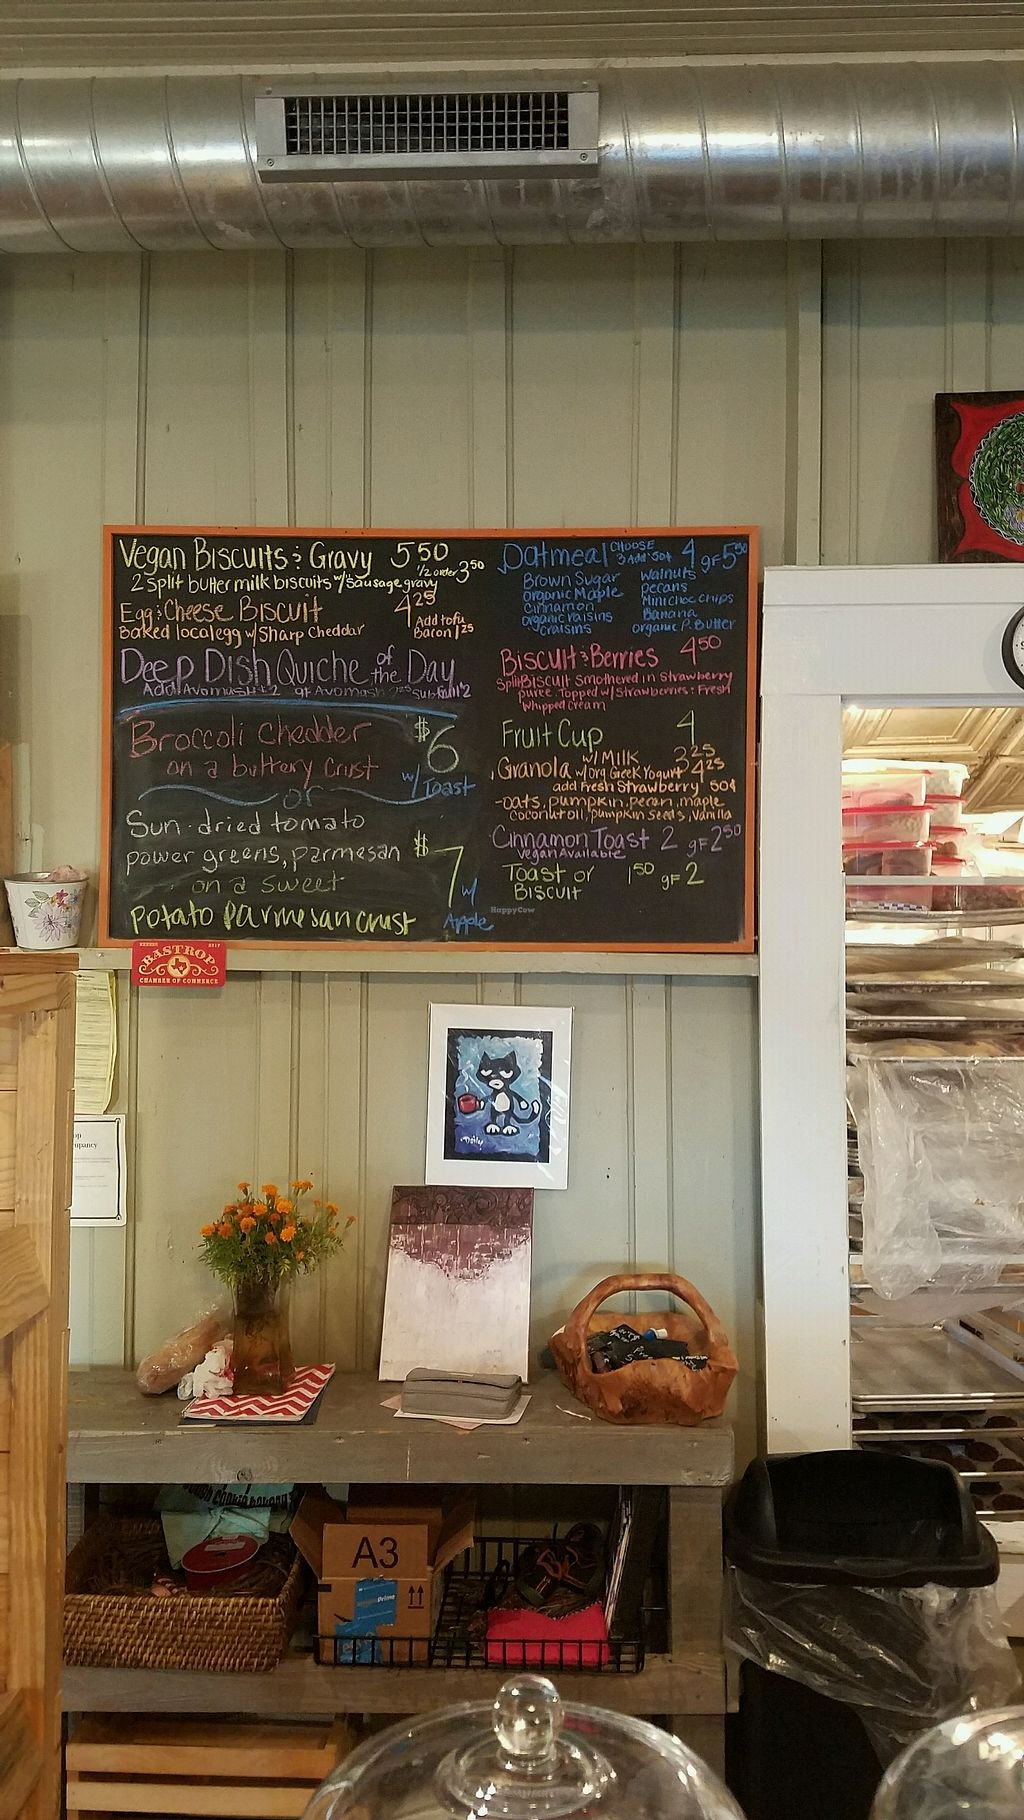 """Photo of Tough Cookie Bakery  by <a href=""""/members/profile/NTaiResting"""">NTaiResting</a> <br/>Menu board 1 of 3 <br/> December 20, 2017  - <a href='/contact/abuse/image/80319/337649'>Report</a>"""